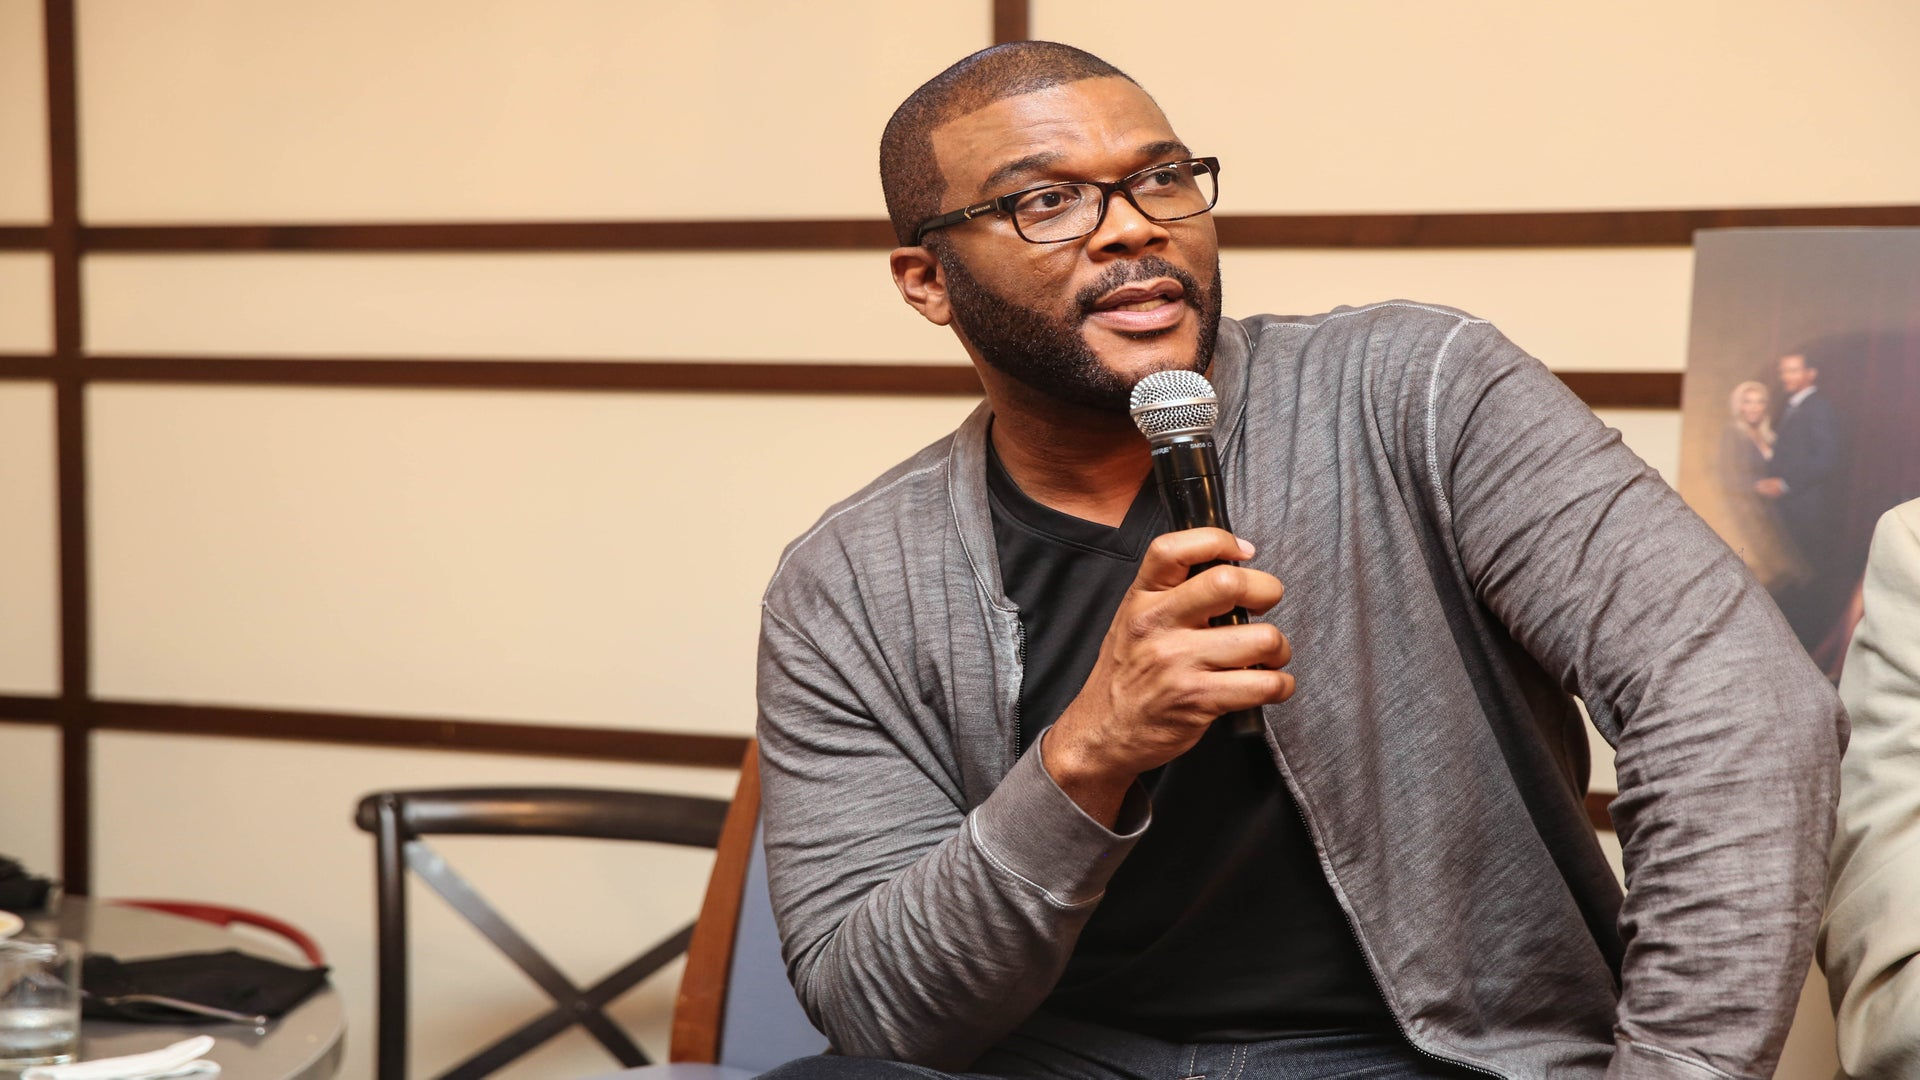 Tyler Perry Has a Few Words for Those Who Call Him a 'Coon'